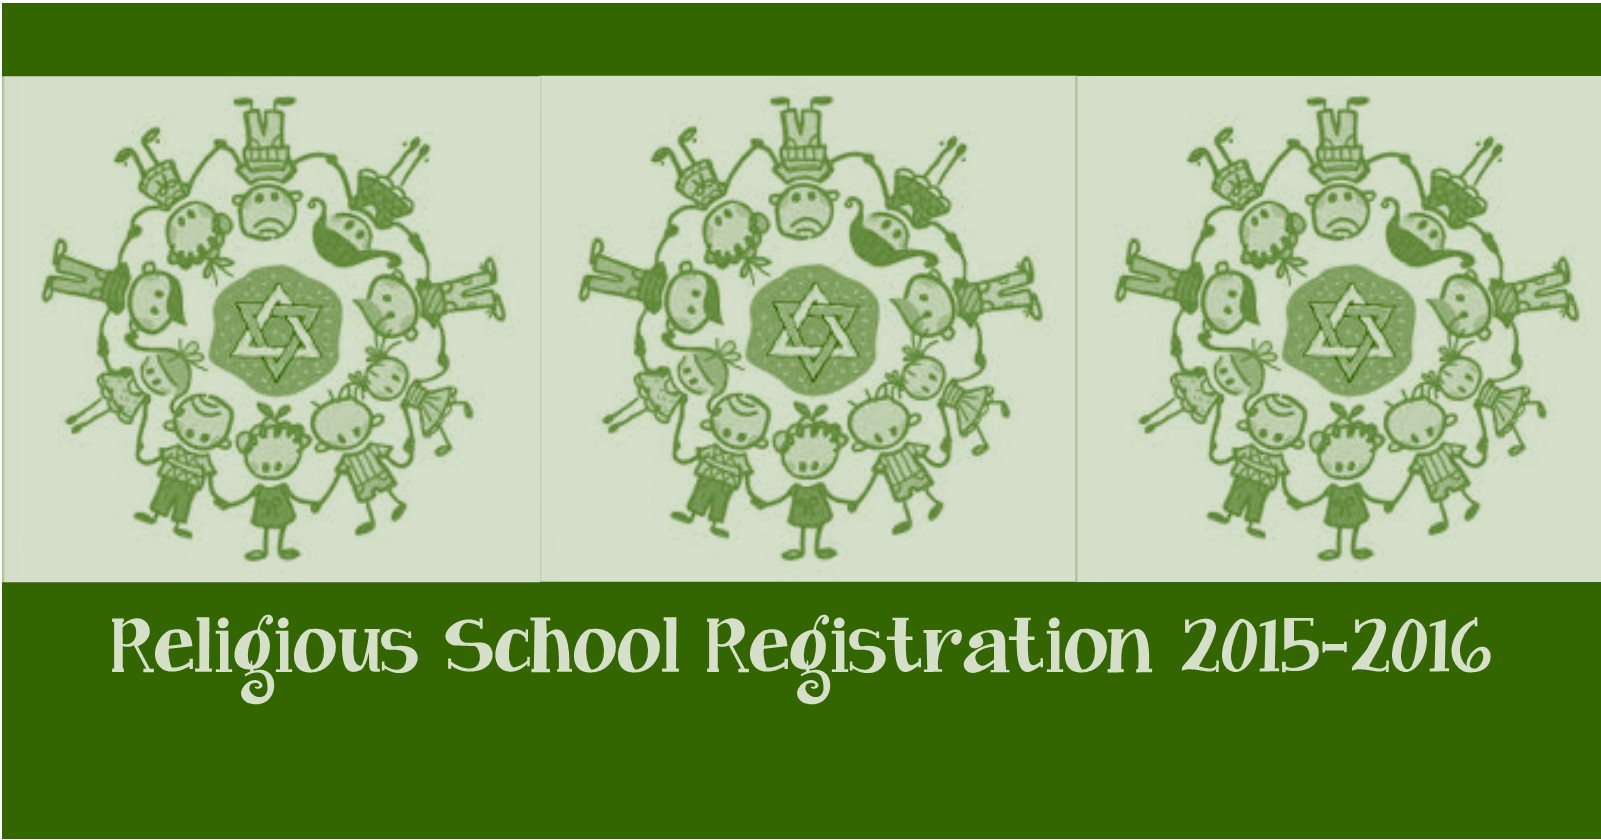 Religious-School-Registration-2015